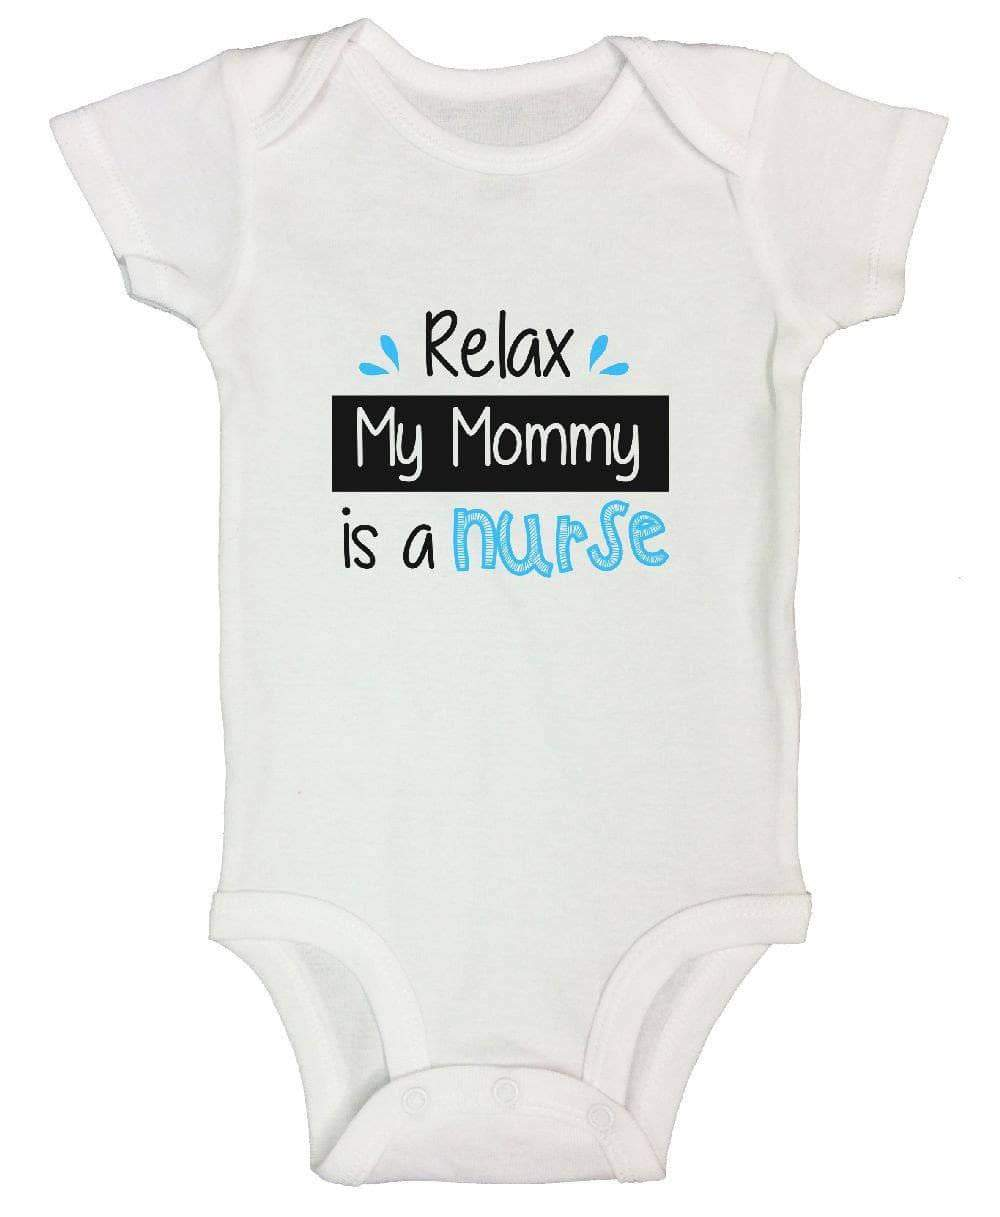 Relax My Mommy Is A Nurse FUNNY KIDS ONESIE Short Sleeve 0-3 Months Womens Tank Tops